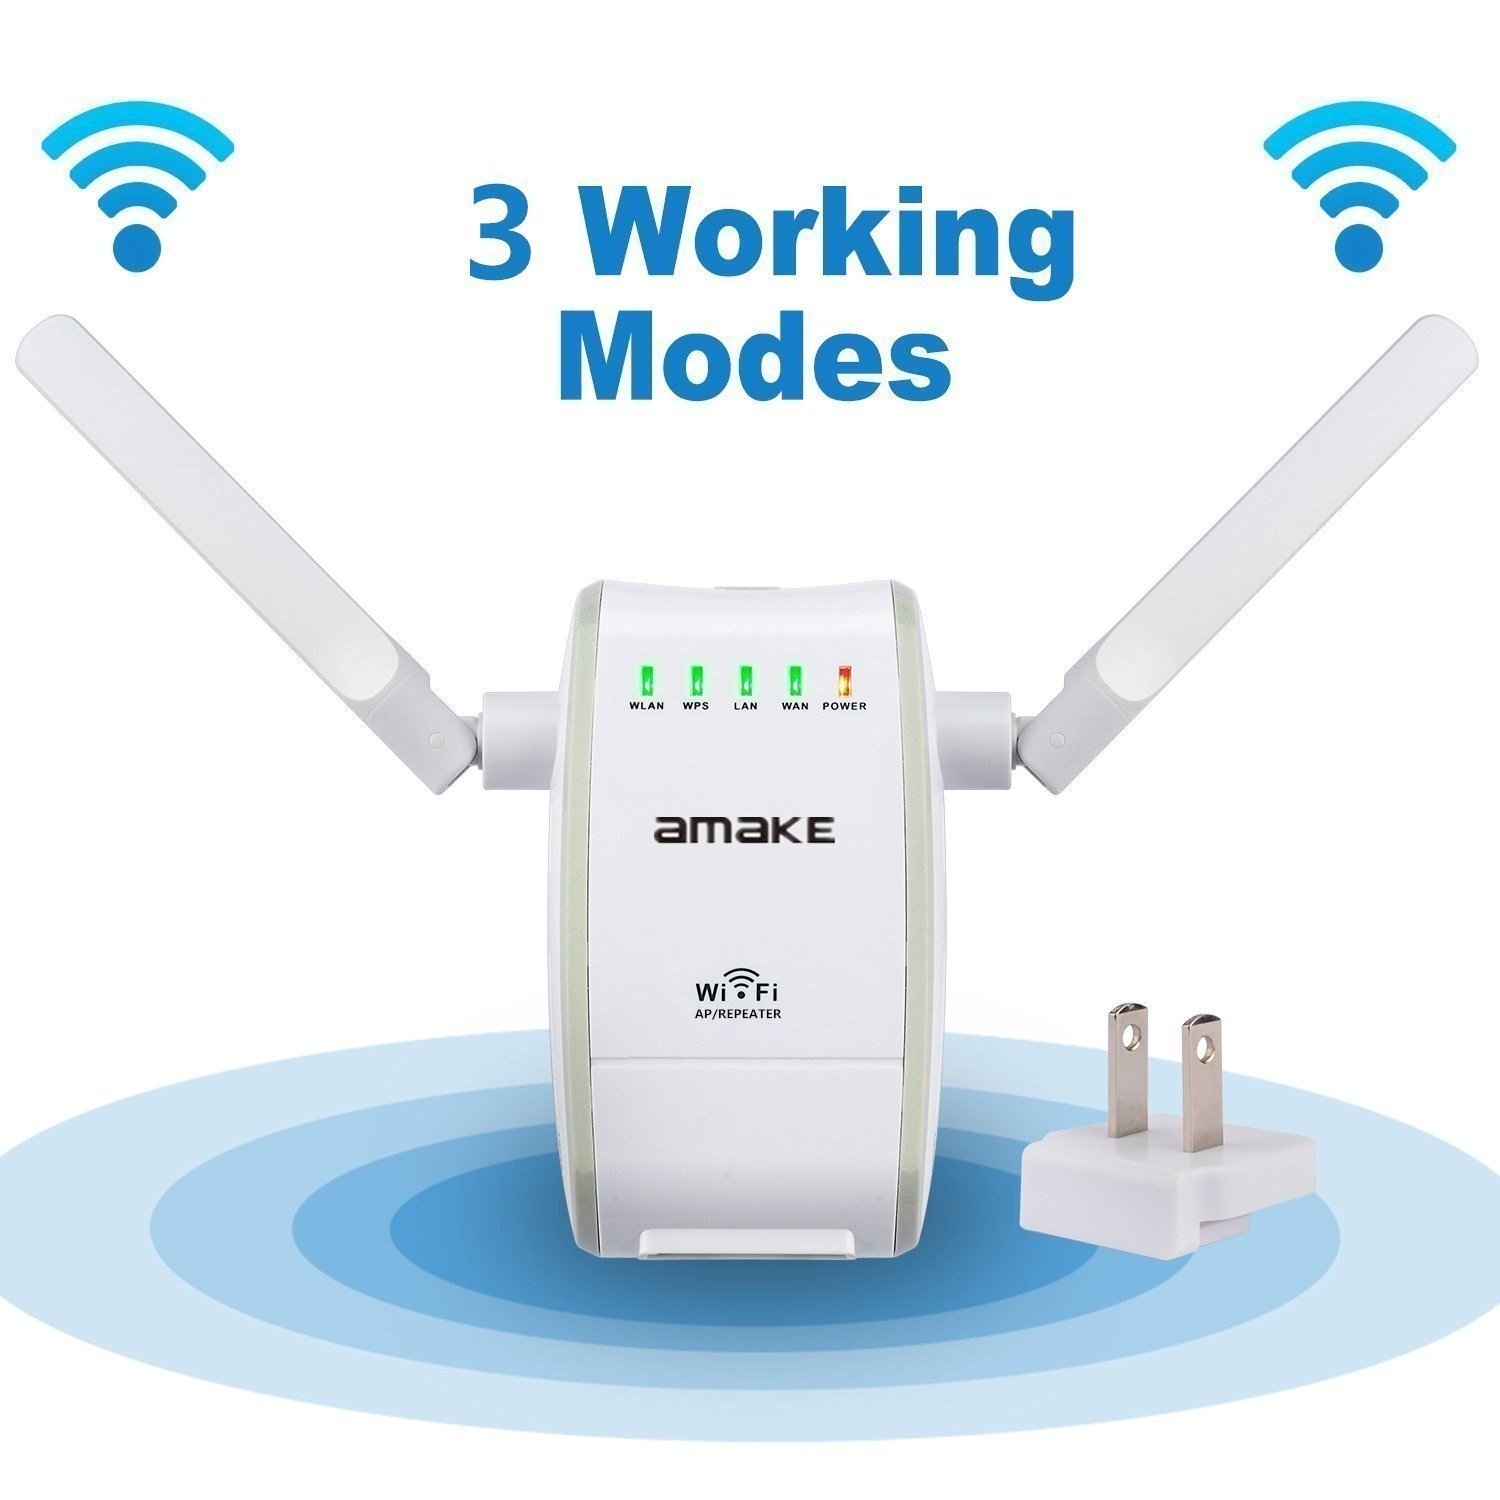 WiFi Router Range Extender,AMAKE 300Mbps Wireless N Repeater 2.4GHz Signal Booster Amplifier Mini Network Adapter with Router/Repeater/AP Modes(802.11 b/g/n,High Gain External Antenna,WAN + LAN Port)